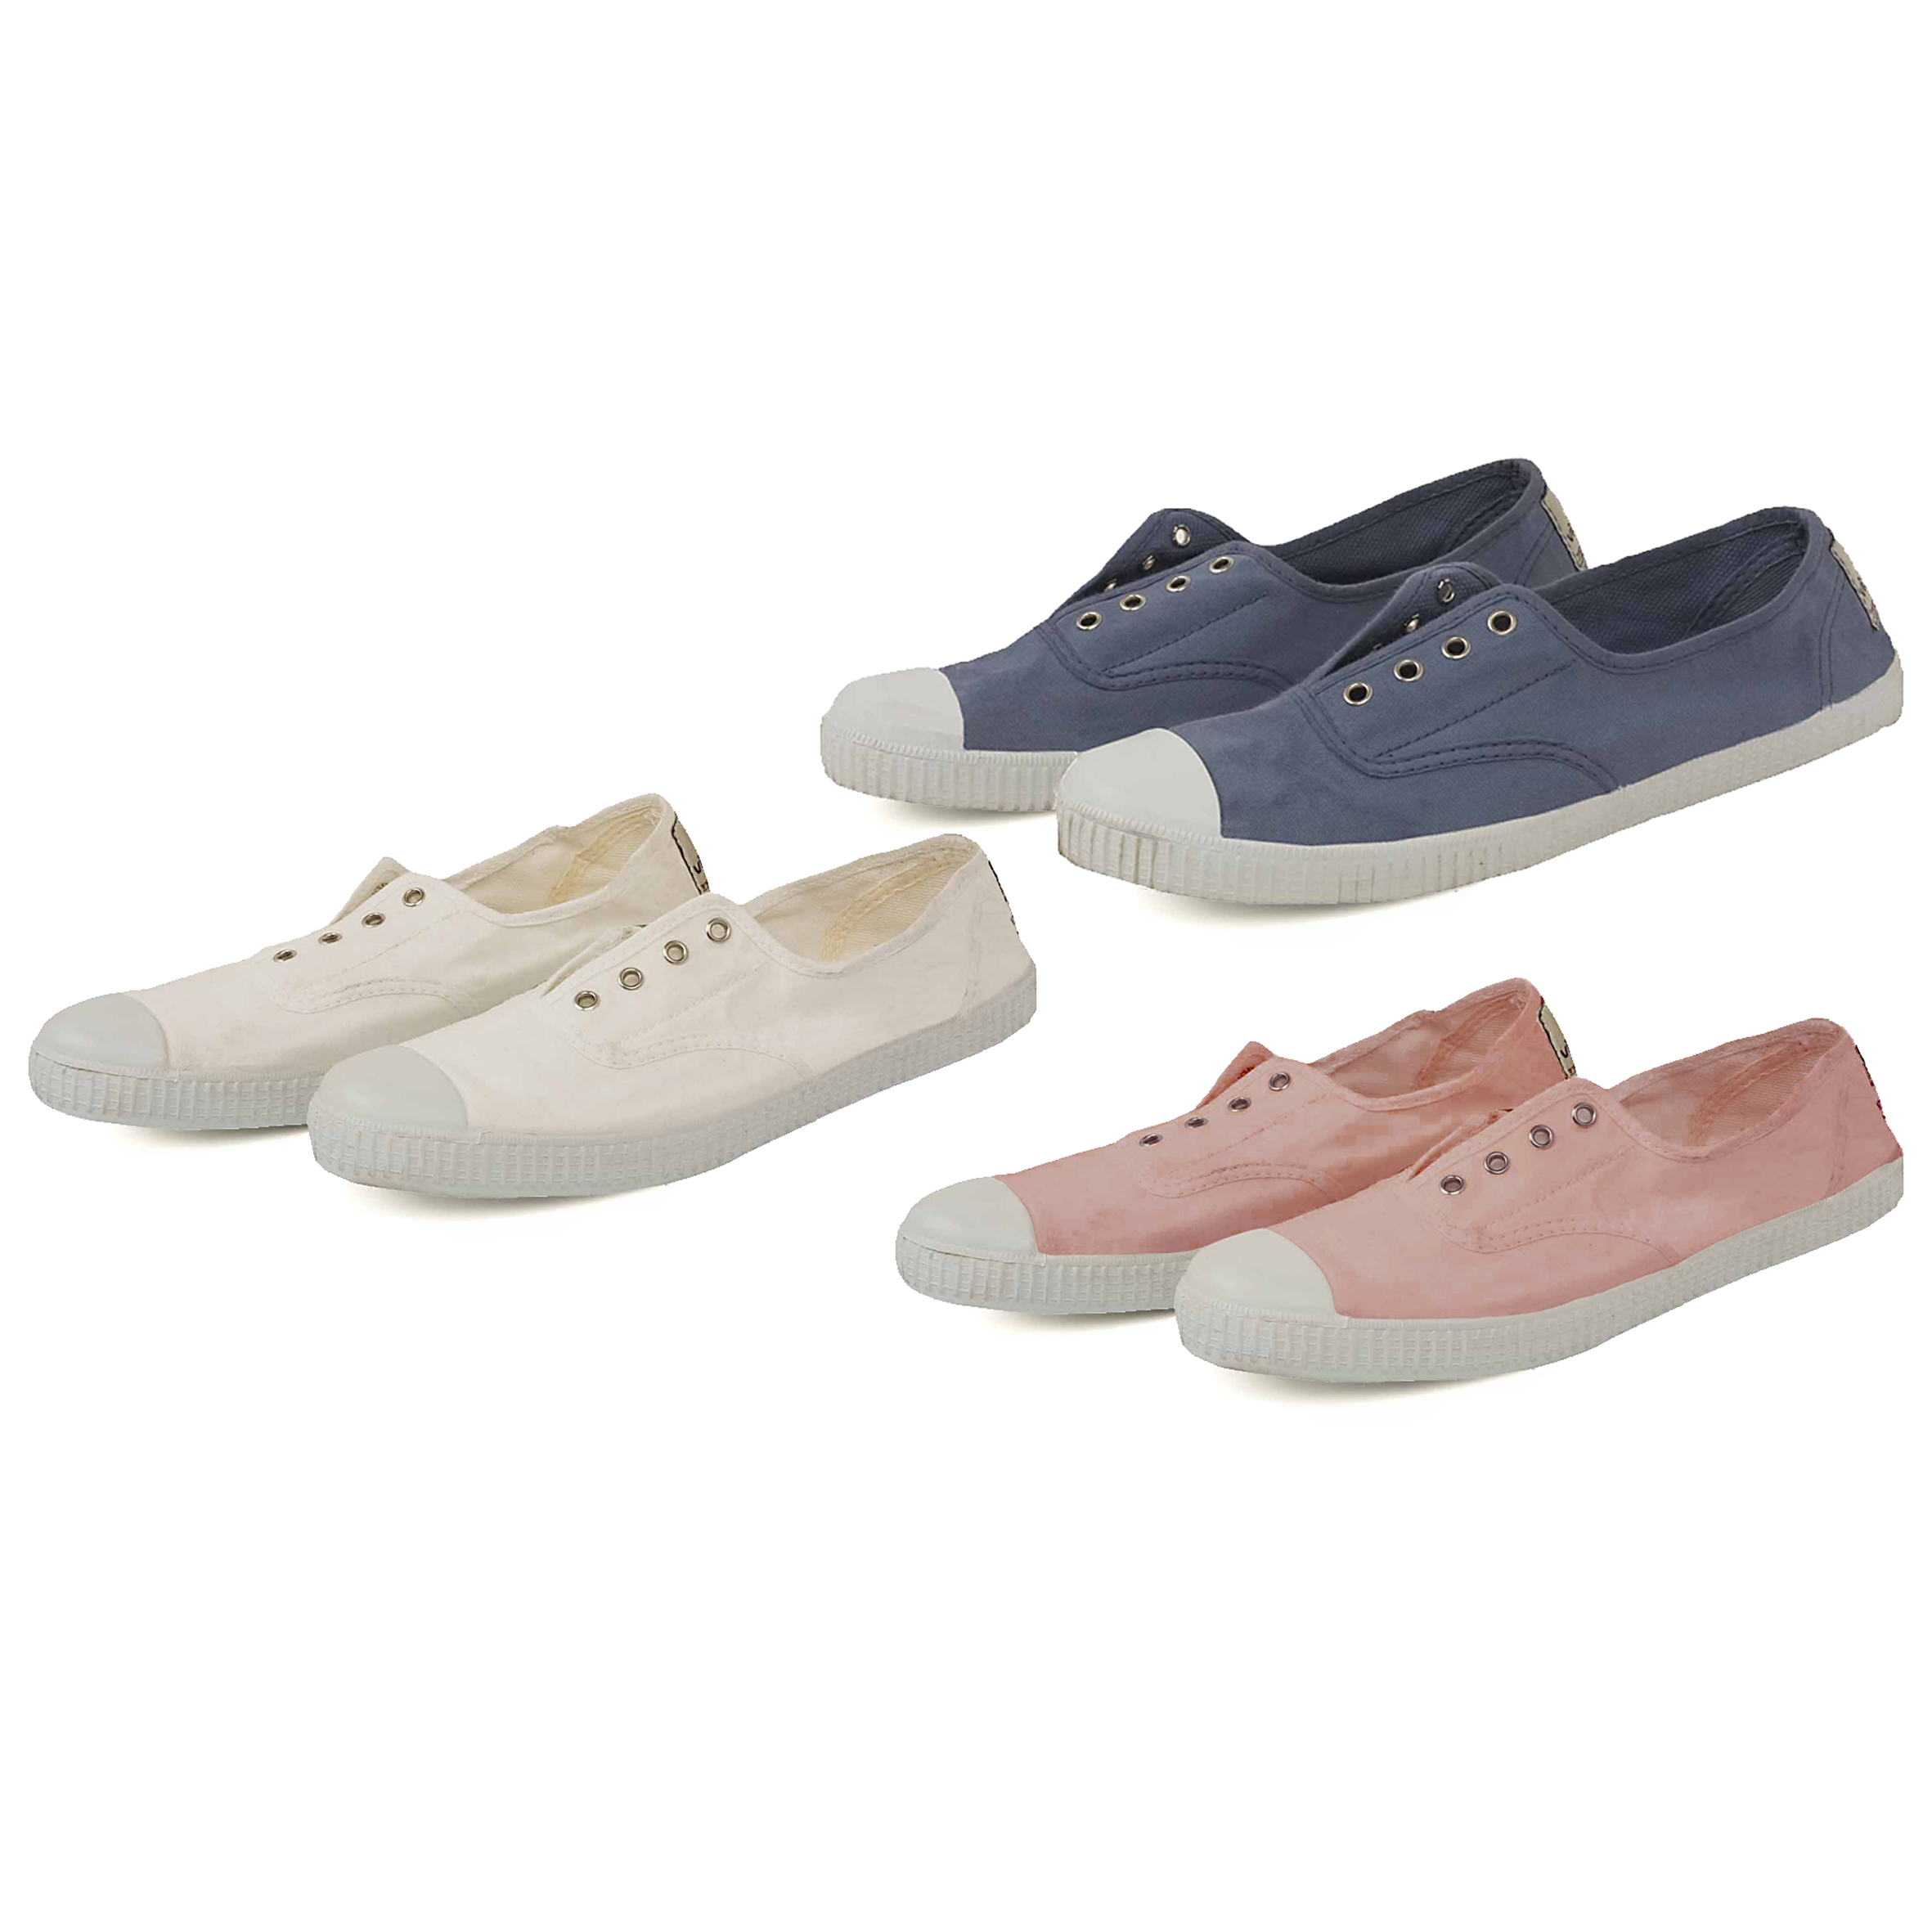 Plimsoll or slipper